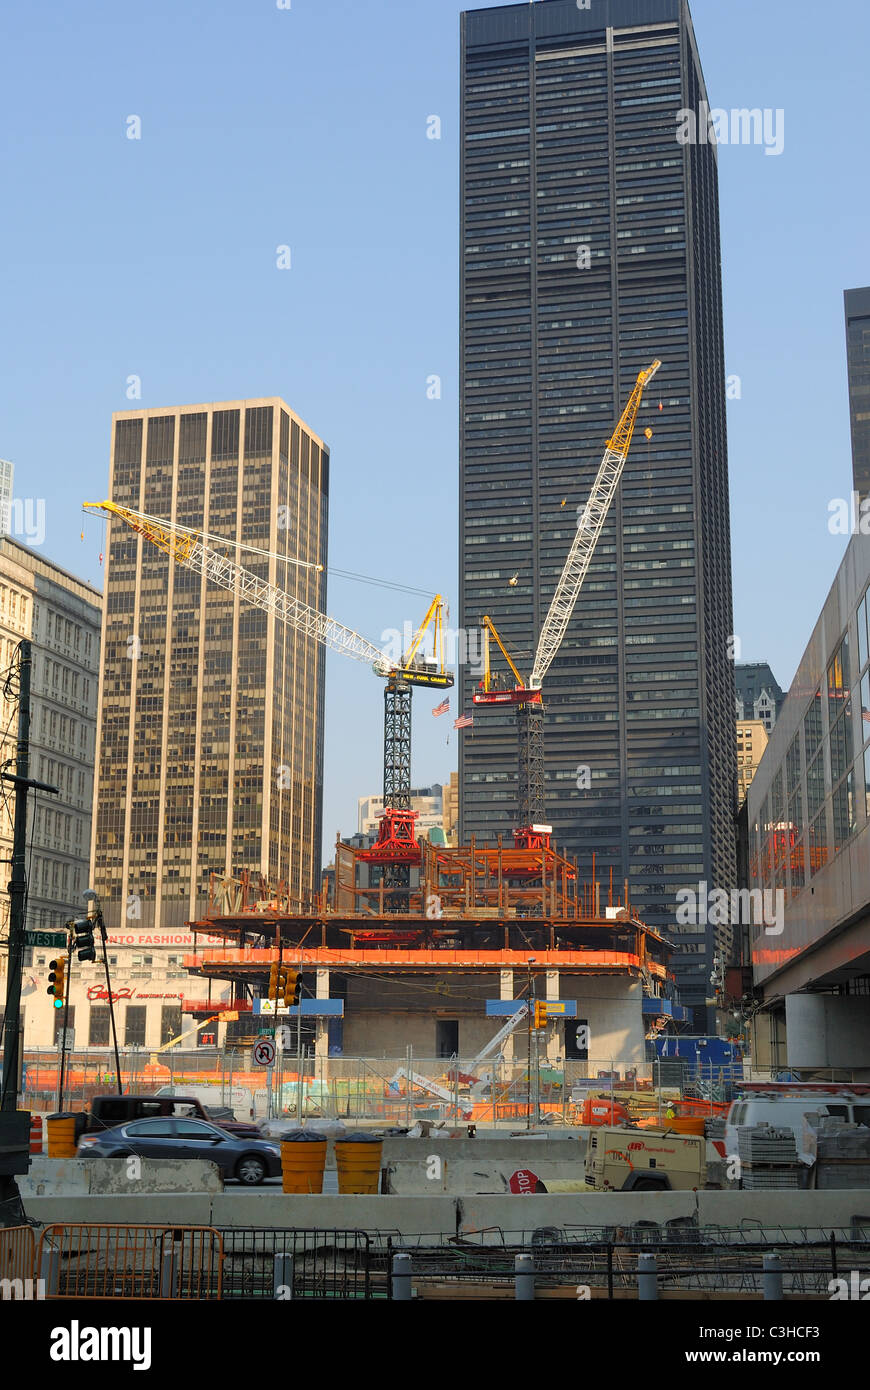 The ongoing construction at the the World Trade Center in New York City. September 1, 2010. - Stock Image